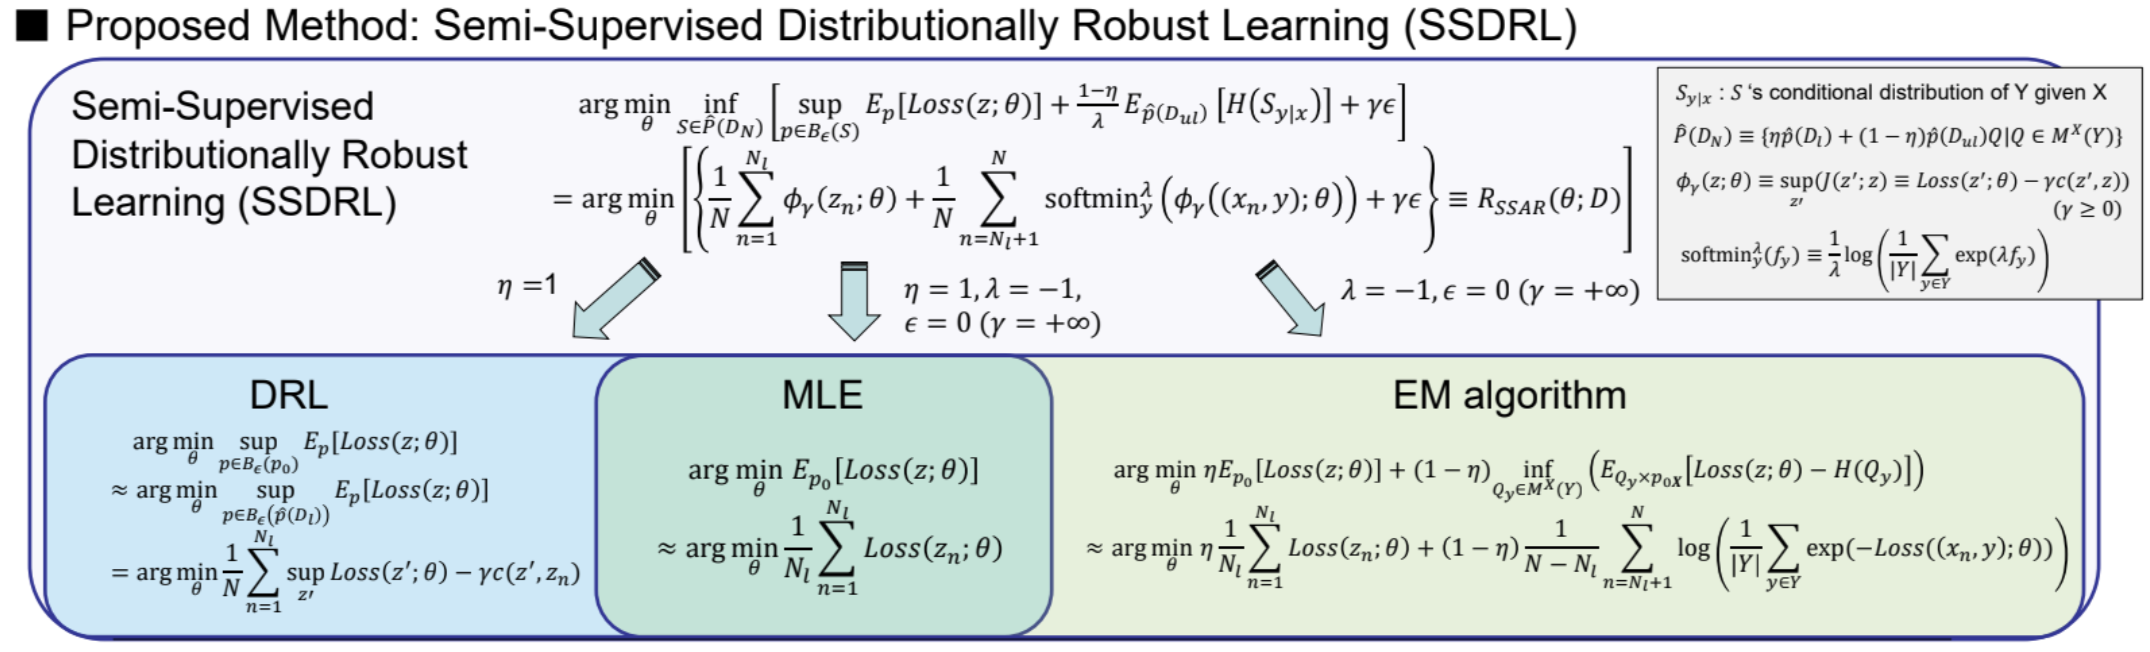 Robustness to Adversarial Perturbations in Learning from Incomplete Data